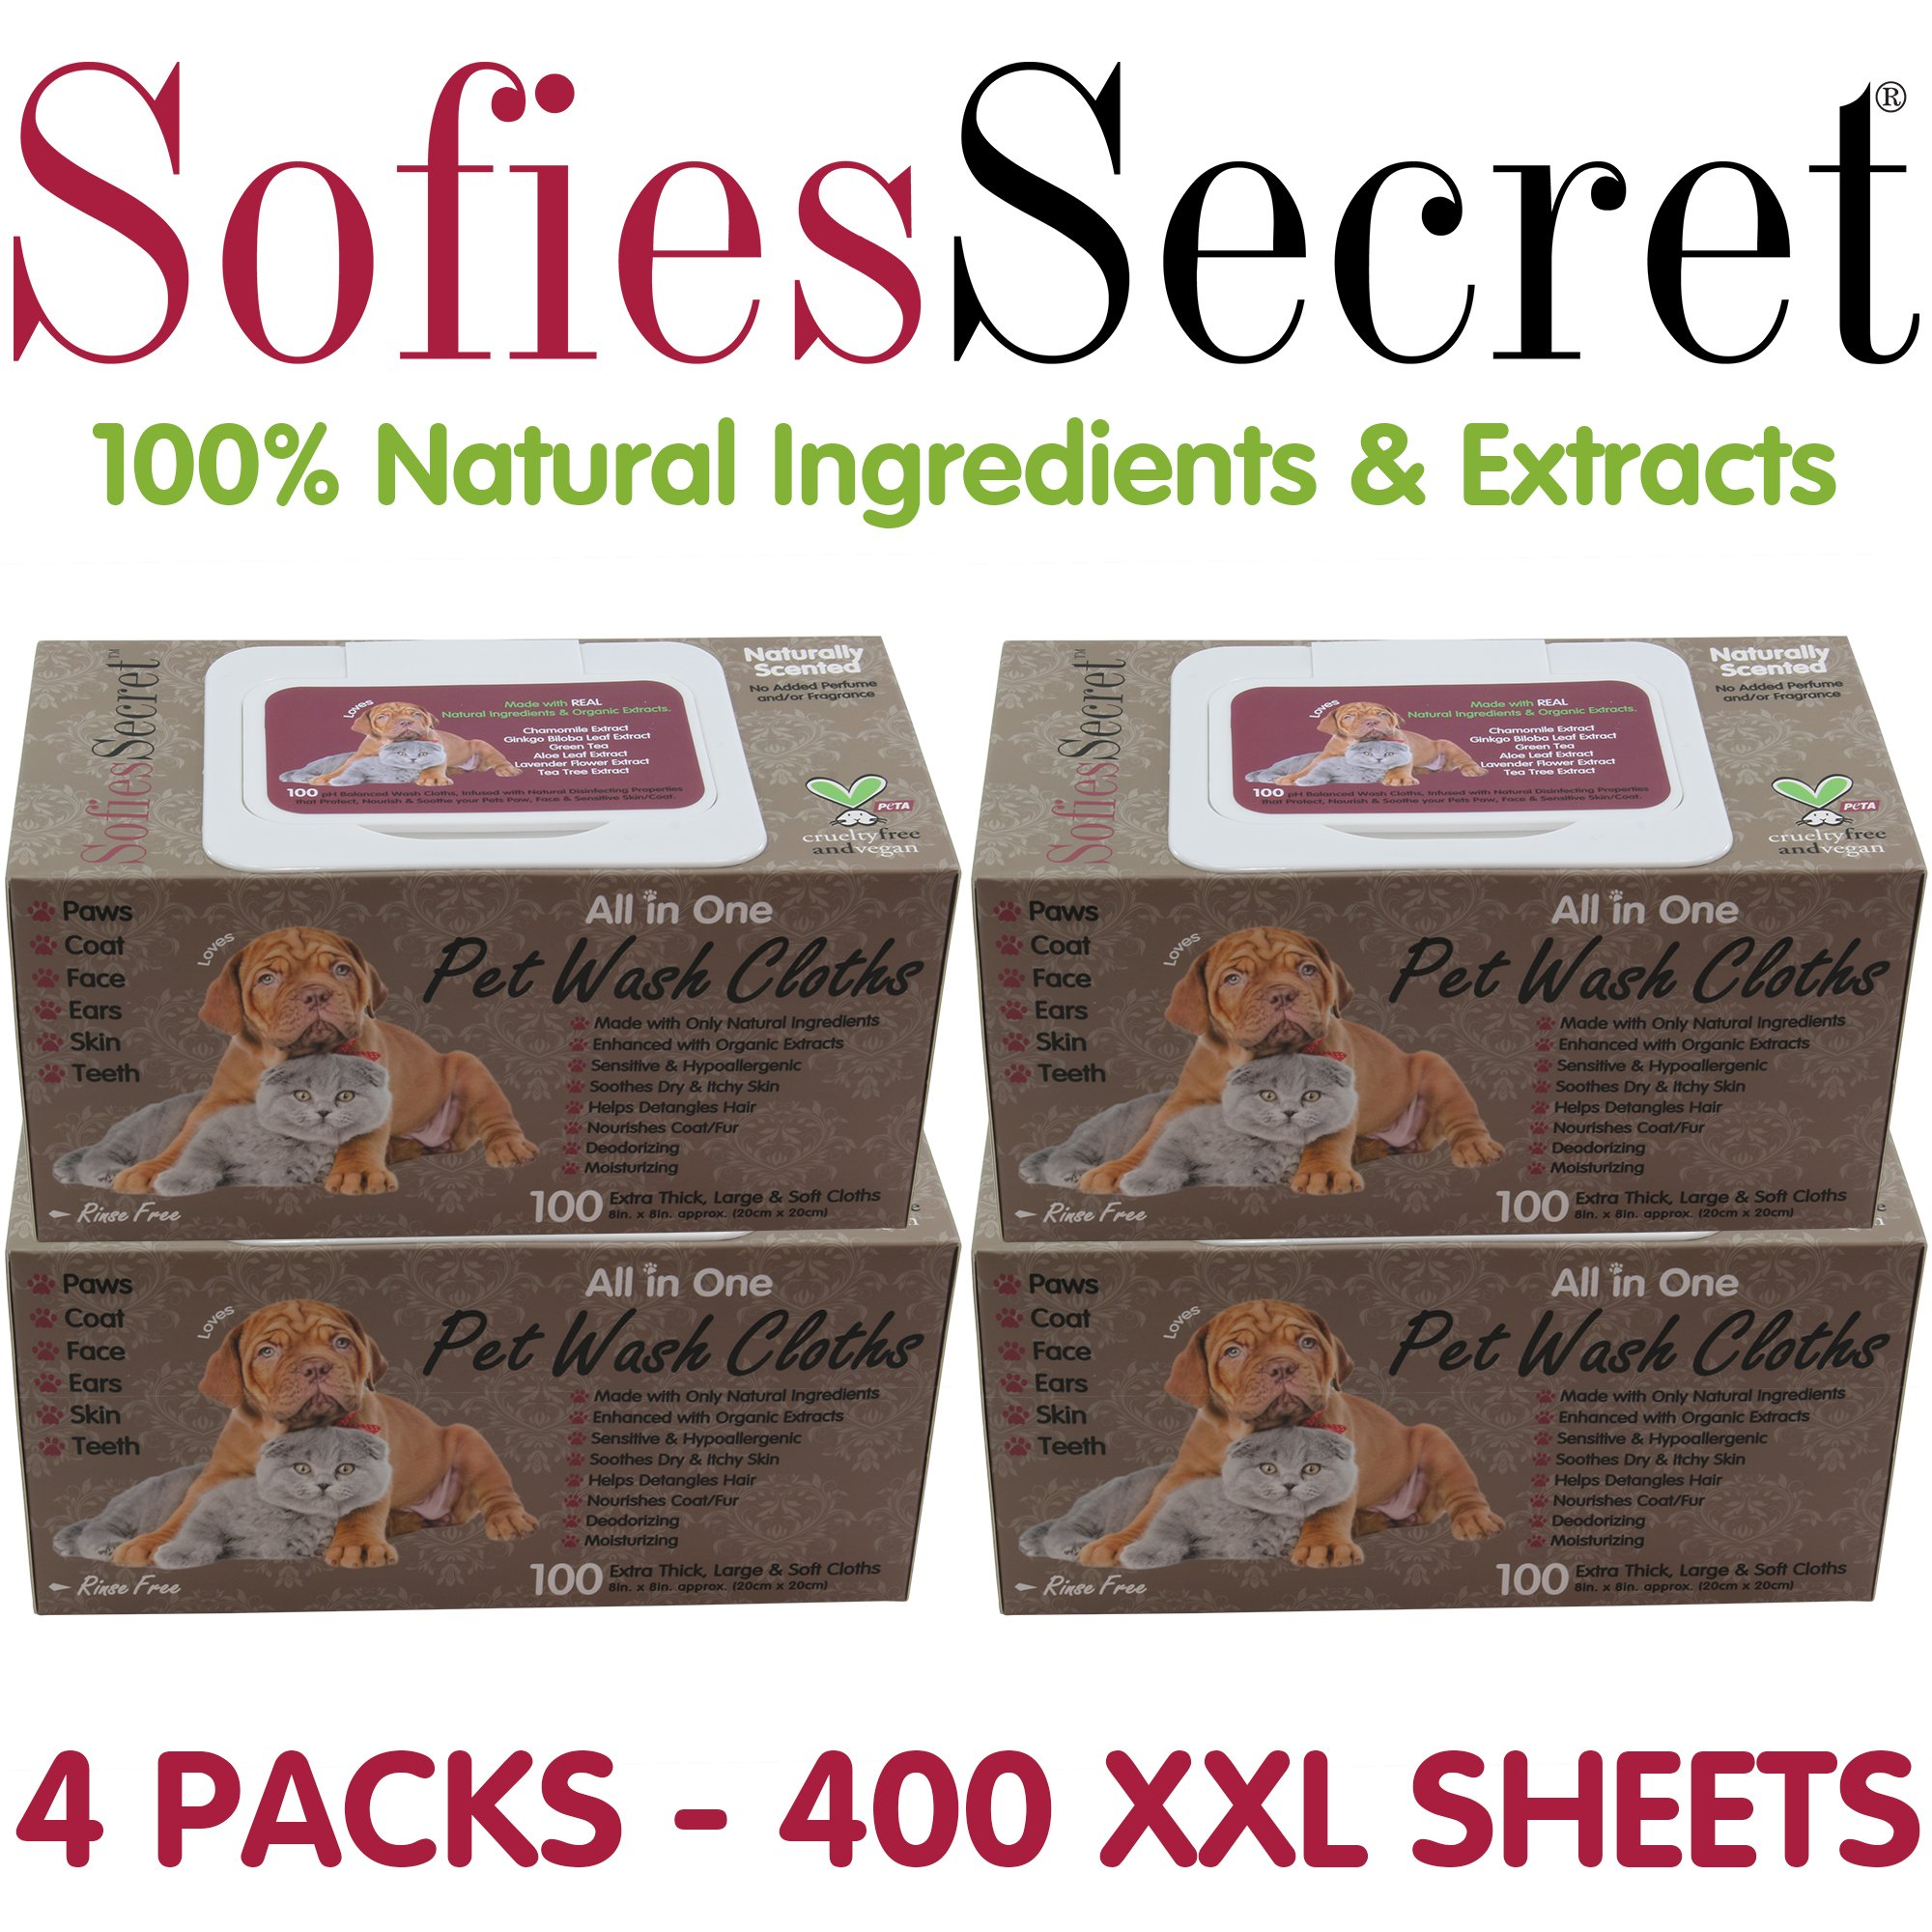 SofiesSecret Pet Wipes for Dogs+Cats ALL IN ONE,PP LID 400 Count, 100% Natural & Organic Extracts, Extra Thick, Ultra Soft, Extra Large,Hypoallergenic, Cruelty Free & Vegan